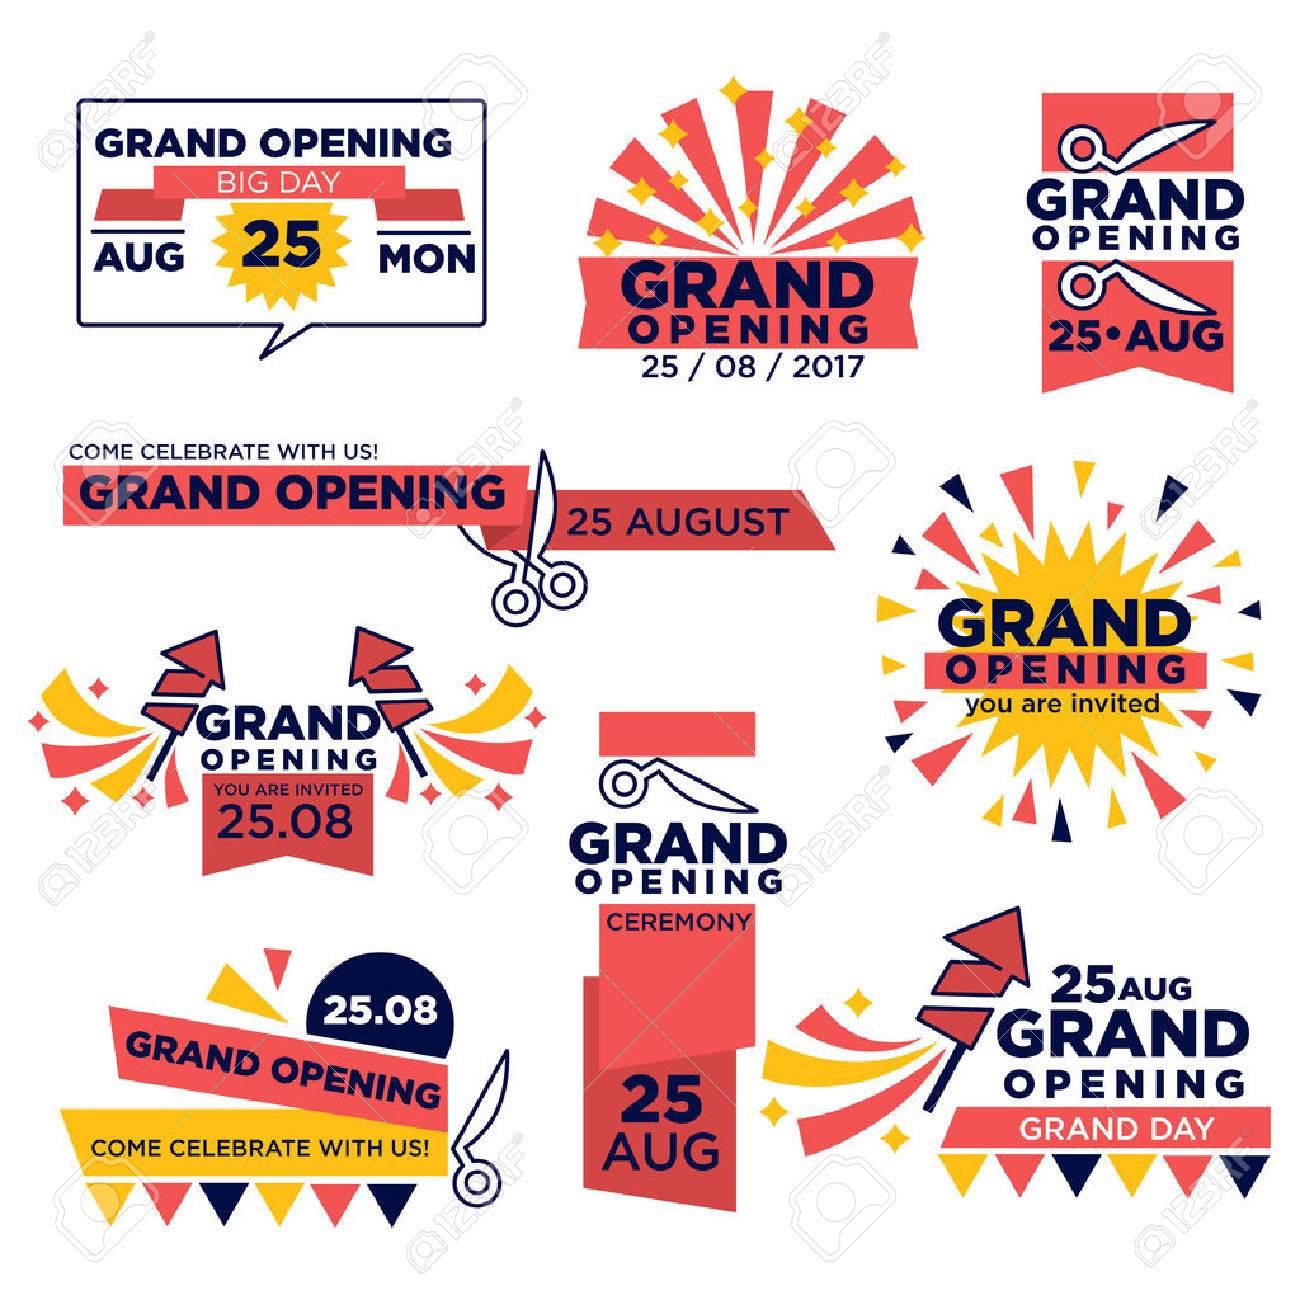 Grand opening event vector icons set for shop or festival - 79644281